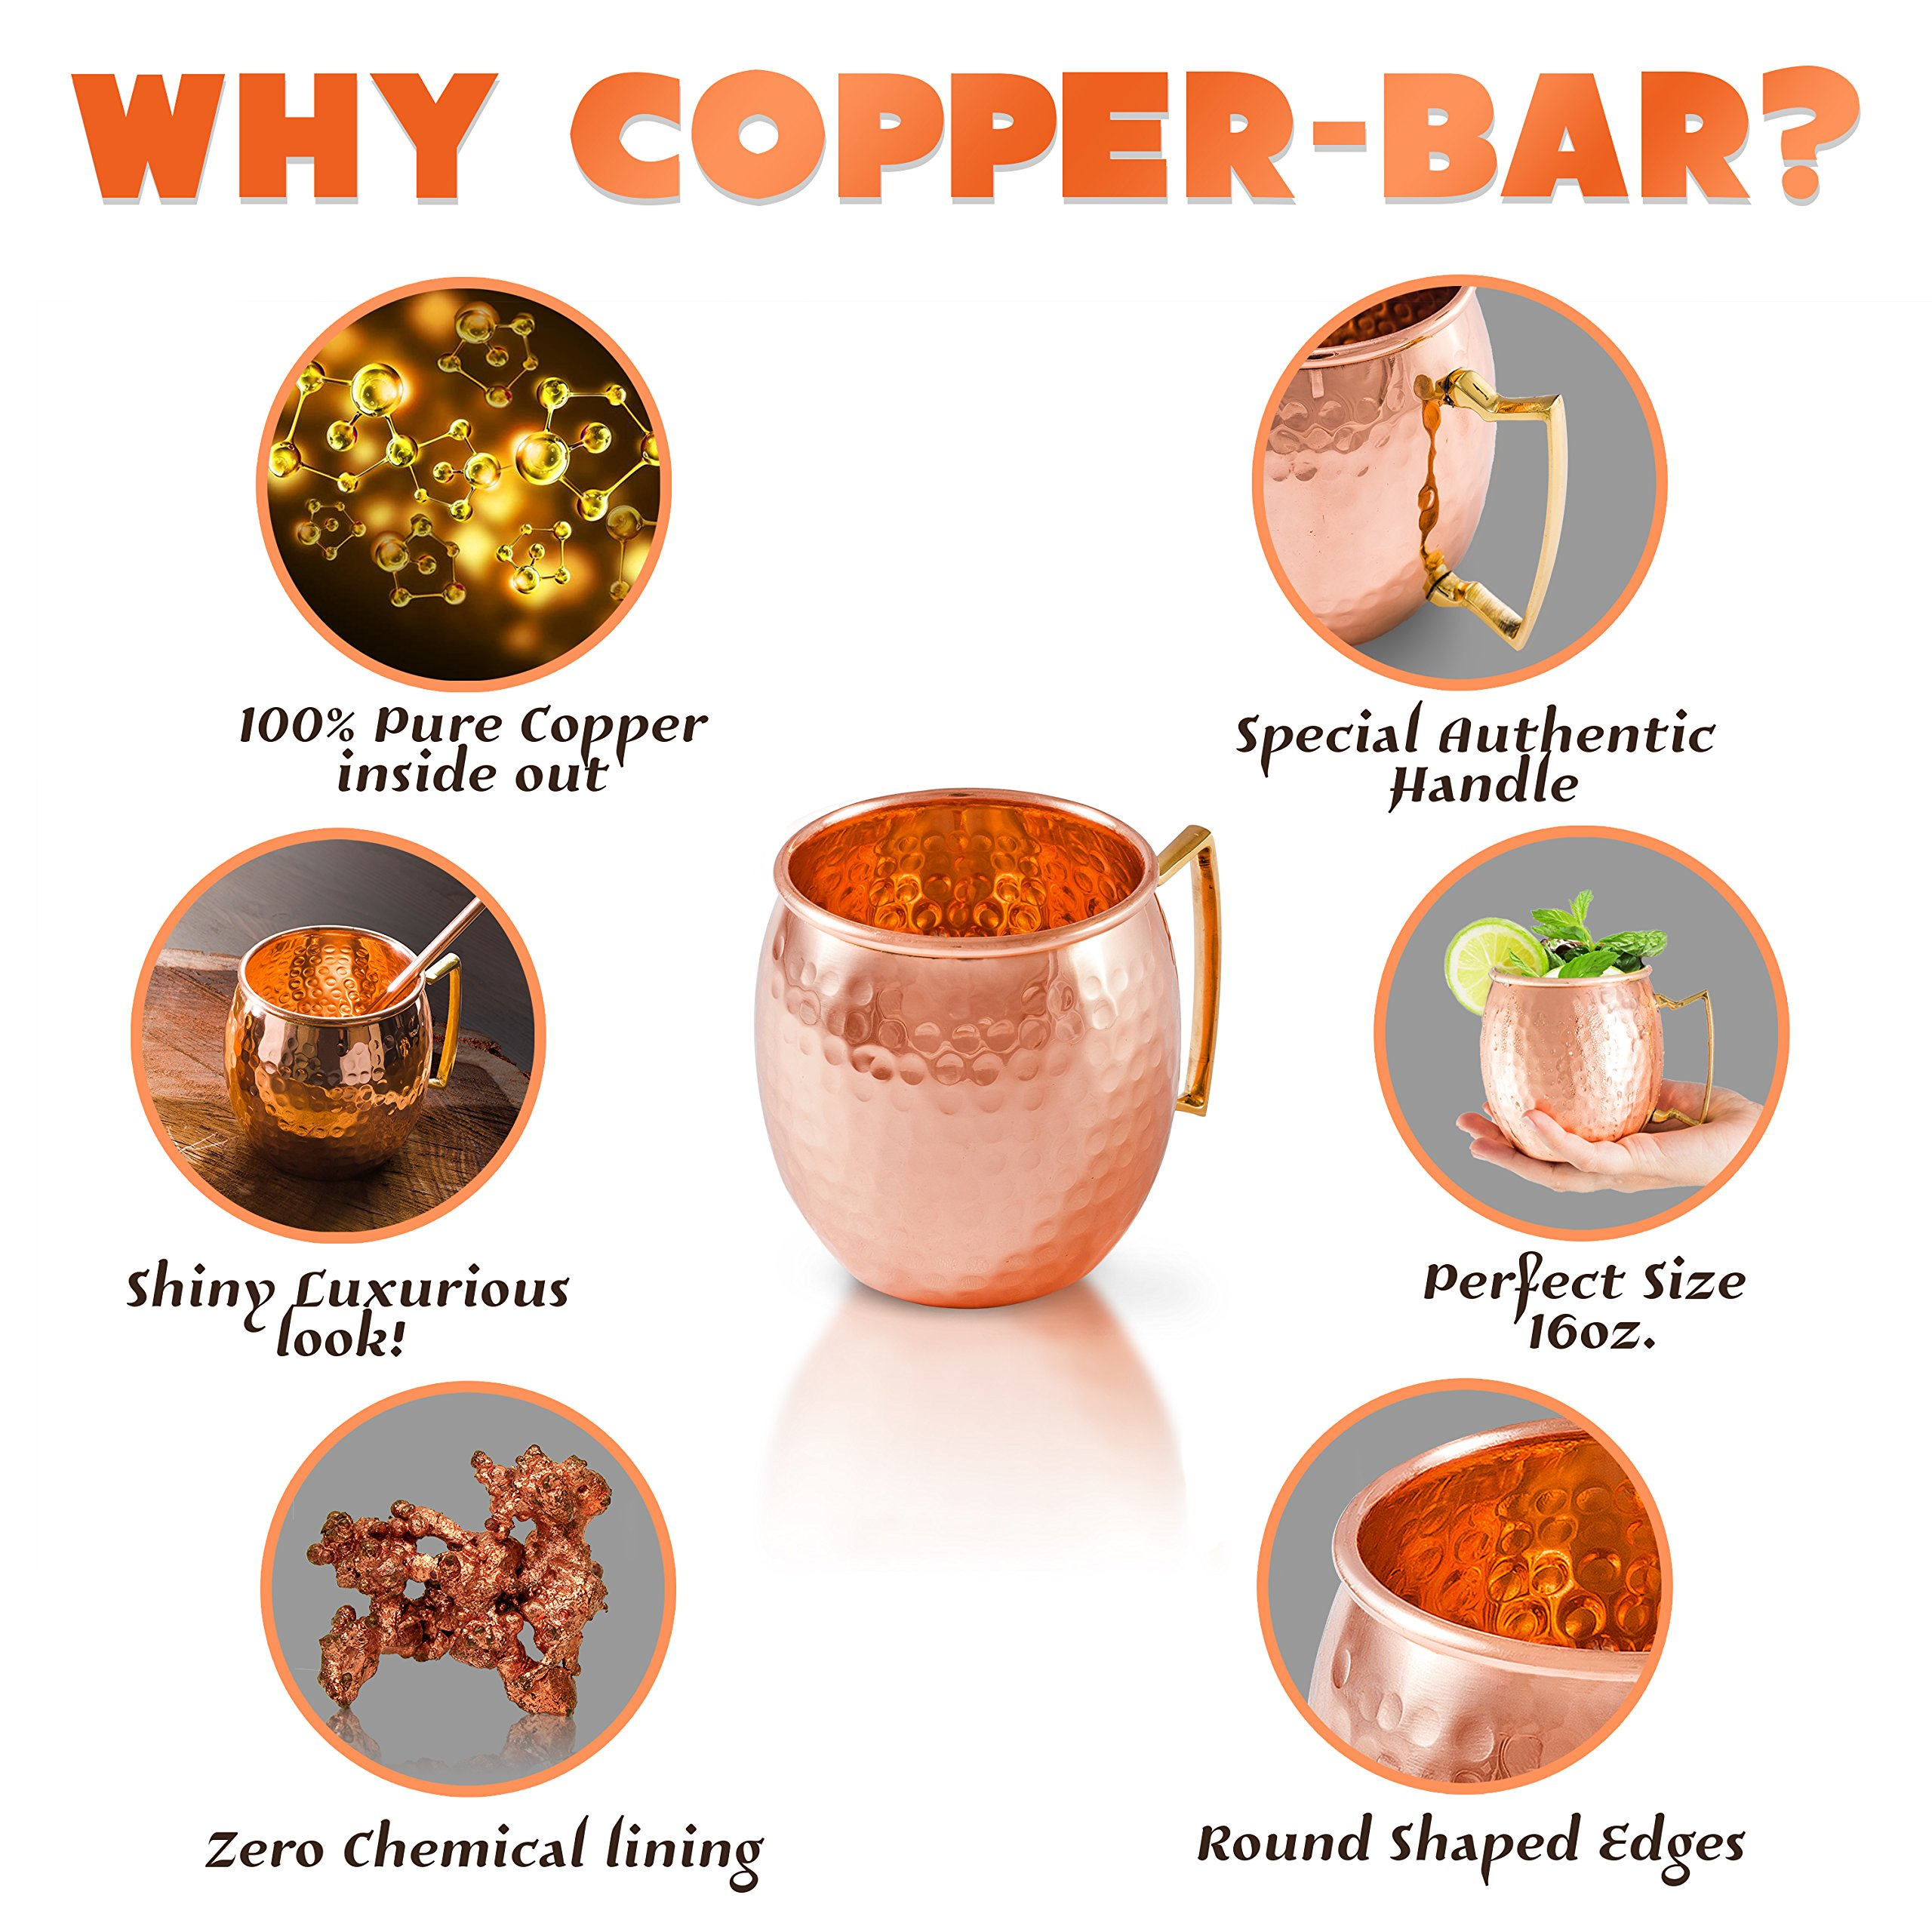 Moscow Mule Mugs 100% Solid Copper, Hammered, Gift Set of 4, No Nickel - Food Safe, 16oz, BONUS: 4 Straws + 1 Shot Glass & 2 E-Books by Copper-Bar by Copper-Bar (Image #4)